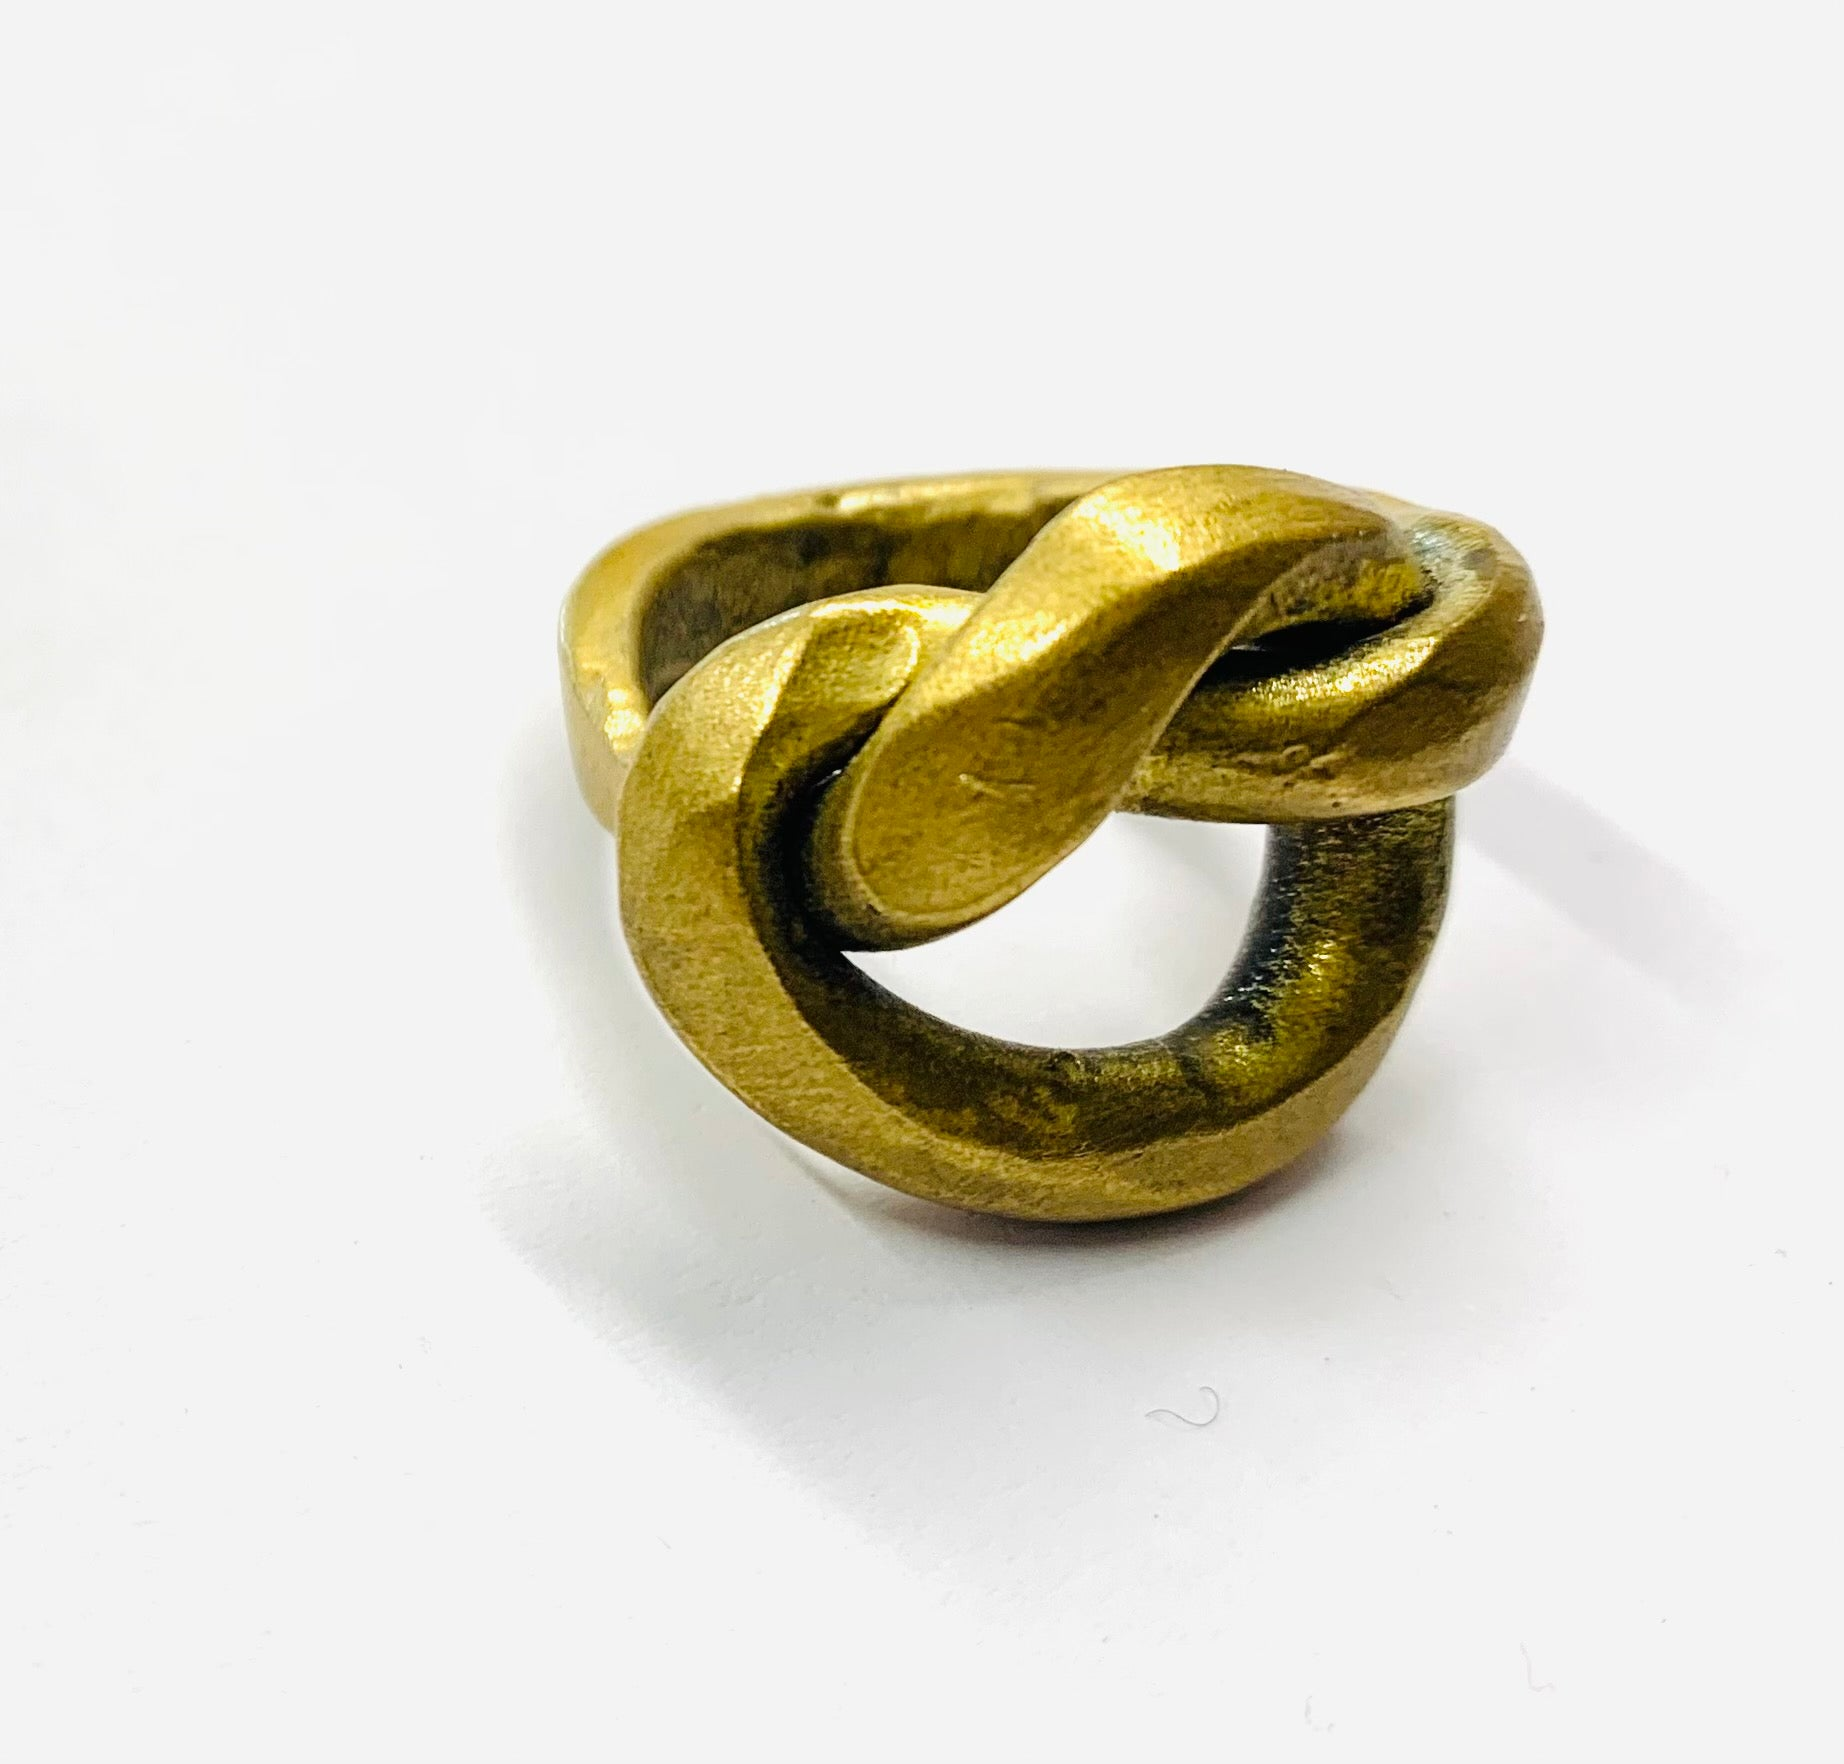 Big brass knot ring